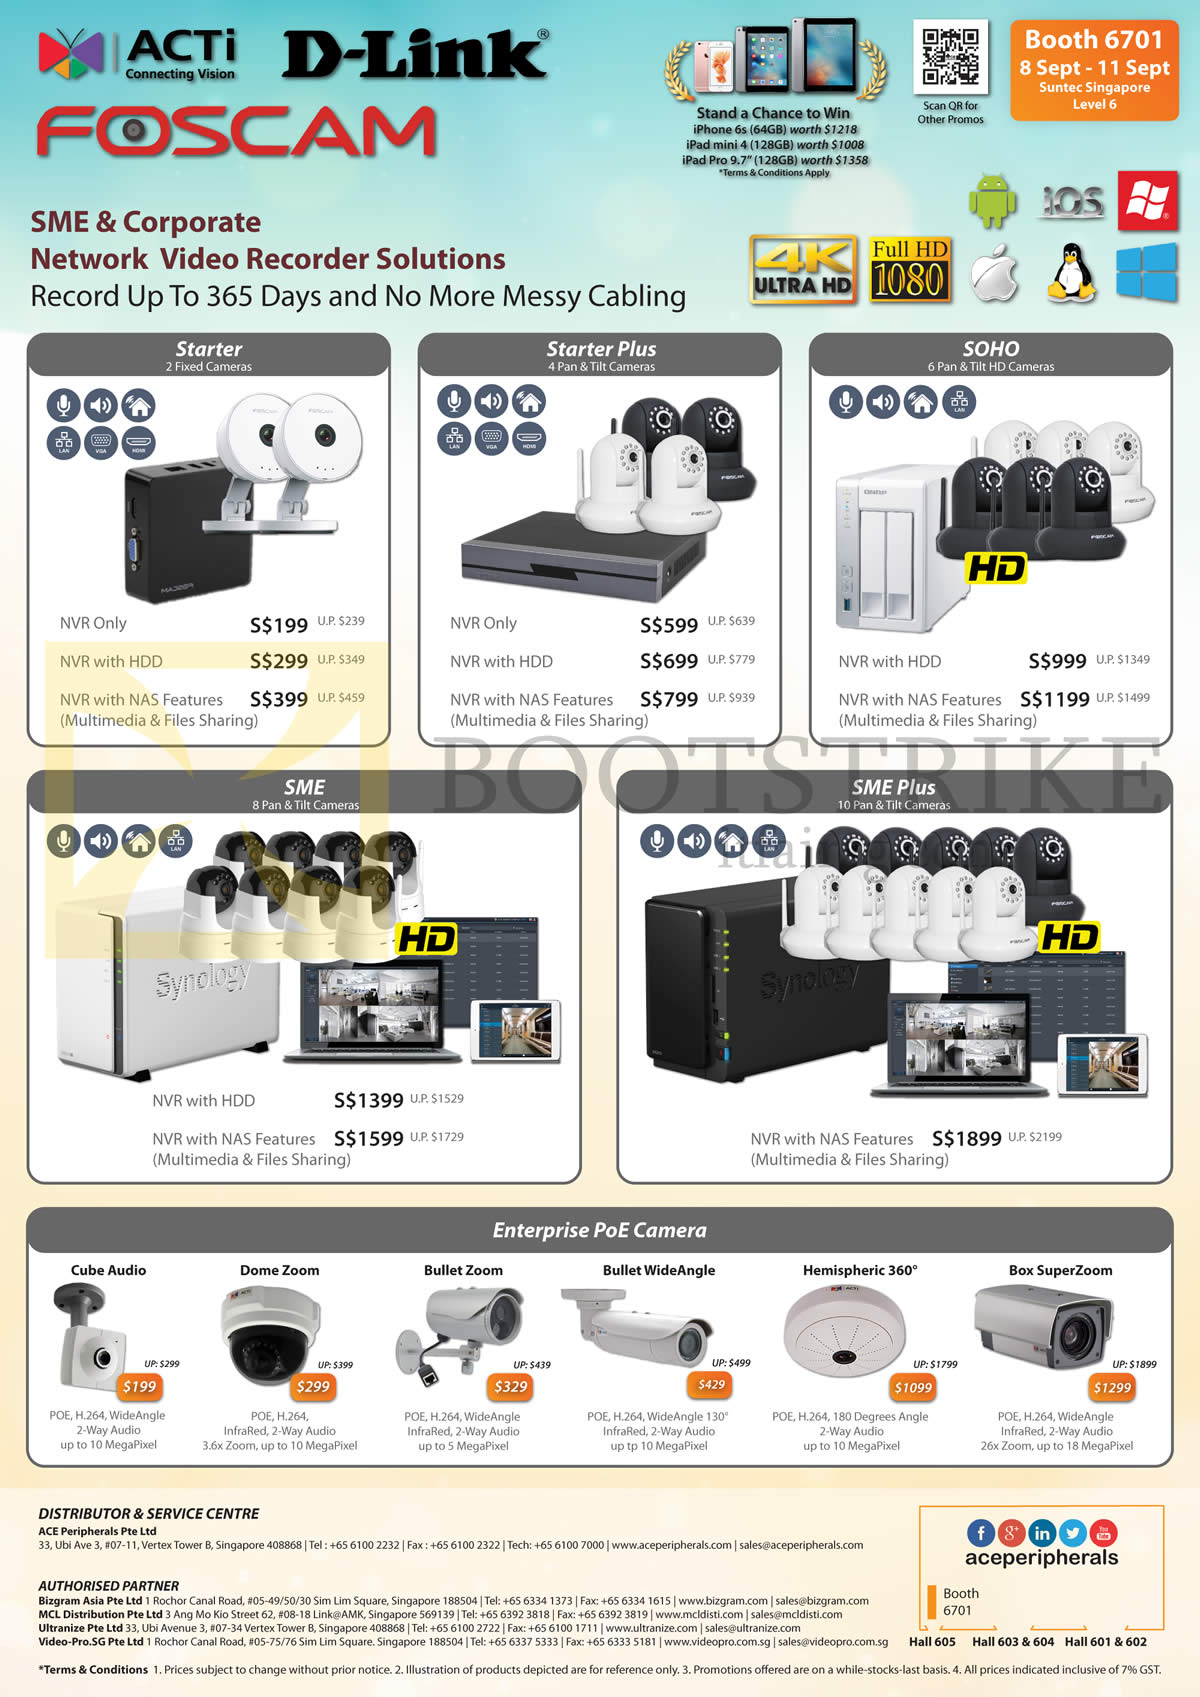 COMEX 2016 price list image brochure of Ace Peripherals D-link Foscam Starter, Plus, SOHO, SMR, SME Plus, Enterprise PoE Camera